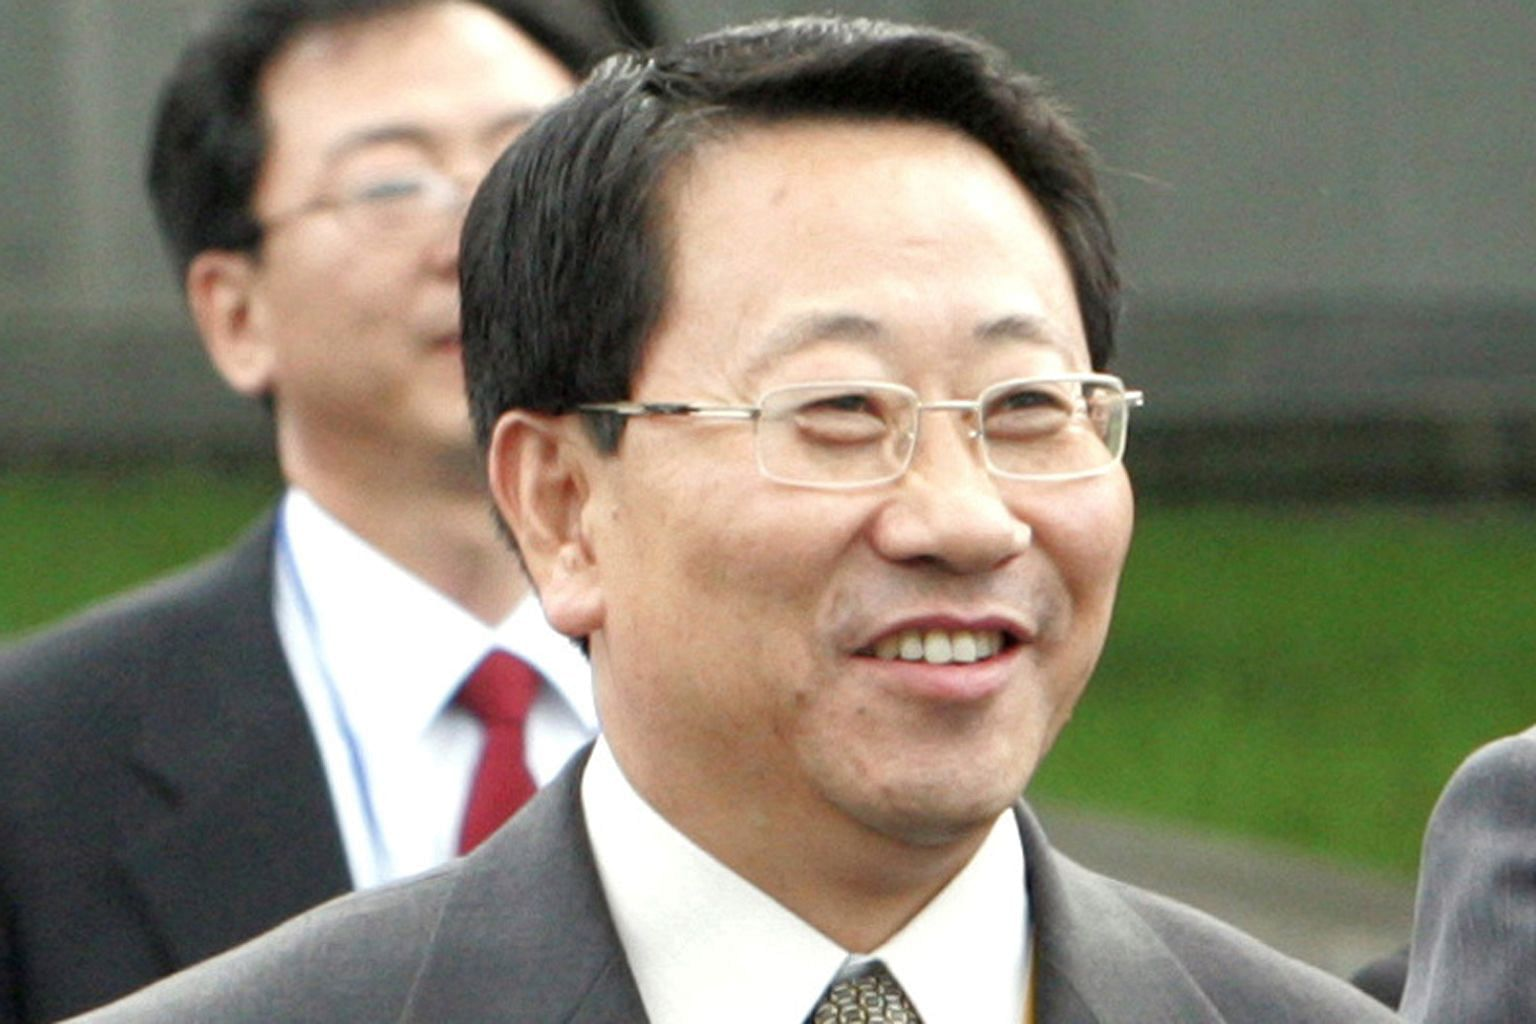 Mr Kim Myong Gil has had extensive exposure to interactions with the US at various nuclear talks.